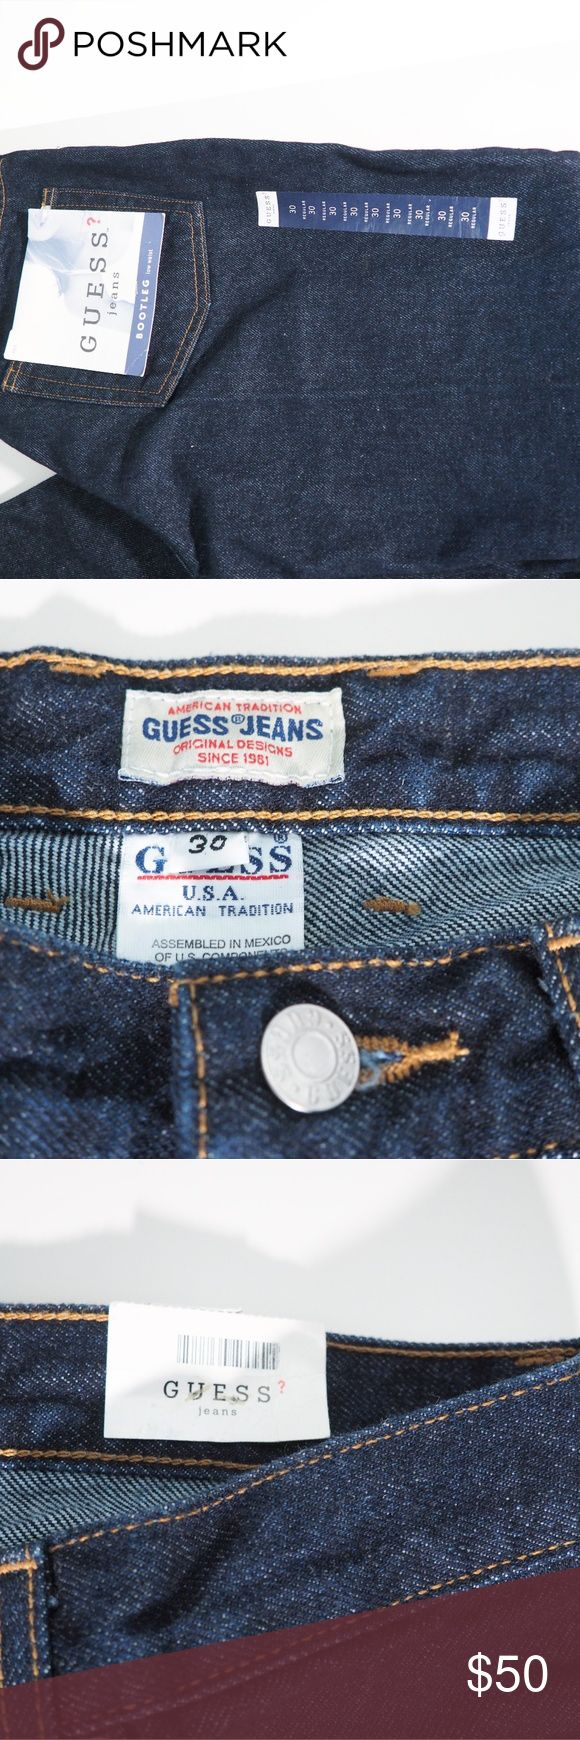 "Guess Jeans Bootleg 30Waist Dark Rinse Dark rinse women's jeans Guess. 060 bootleg low waist cut. 32"" inseam.100% cotton. New with tags. Excellent condition. Guess Jeans Boot Cut"